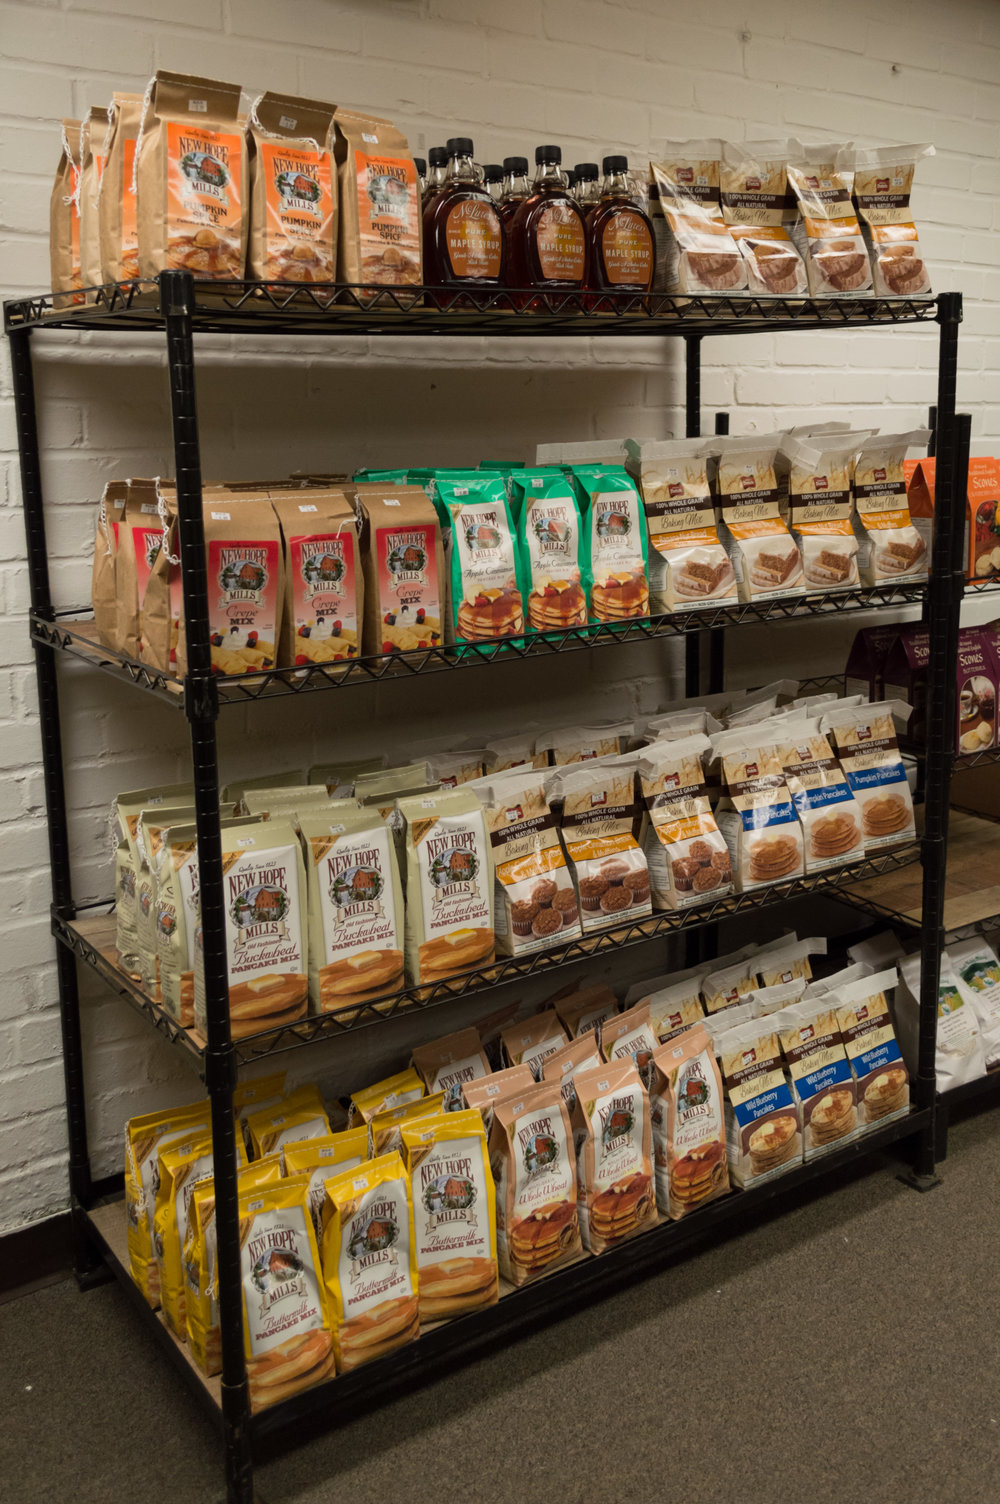 New Hope Mills pancake mixes & Pure Maple Syrup!